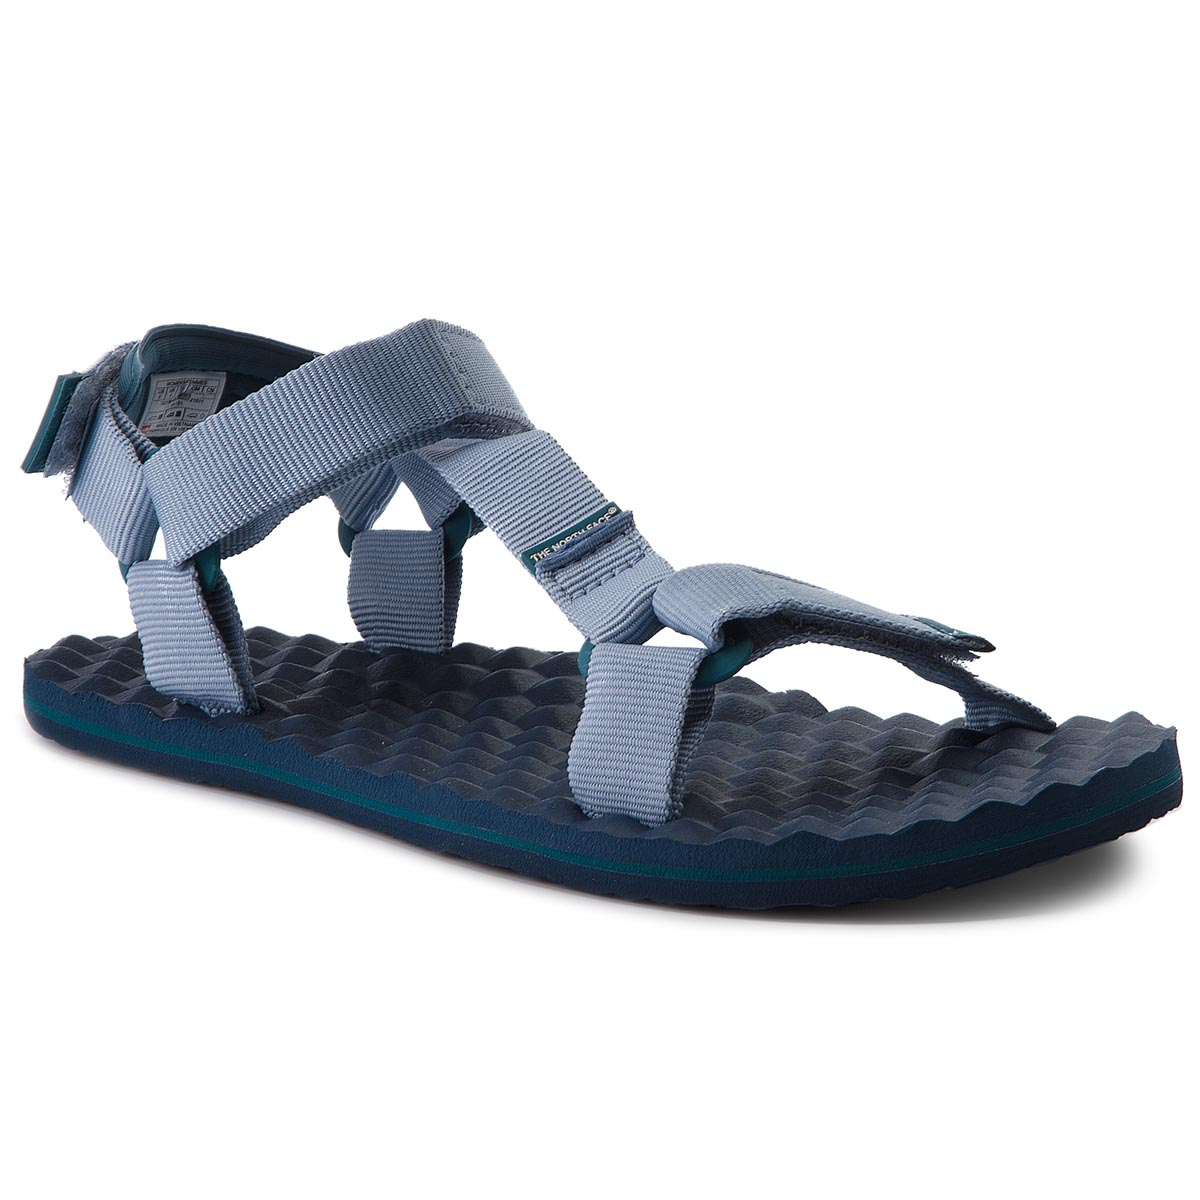 Sandale THE NORTH FACE - Base Camp Switchback Sandal T92Y984FL Dusty Blue/Blue Coral